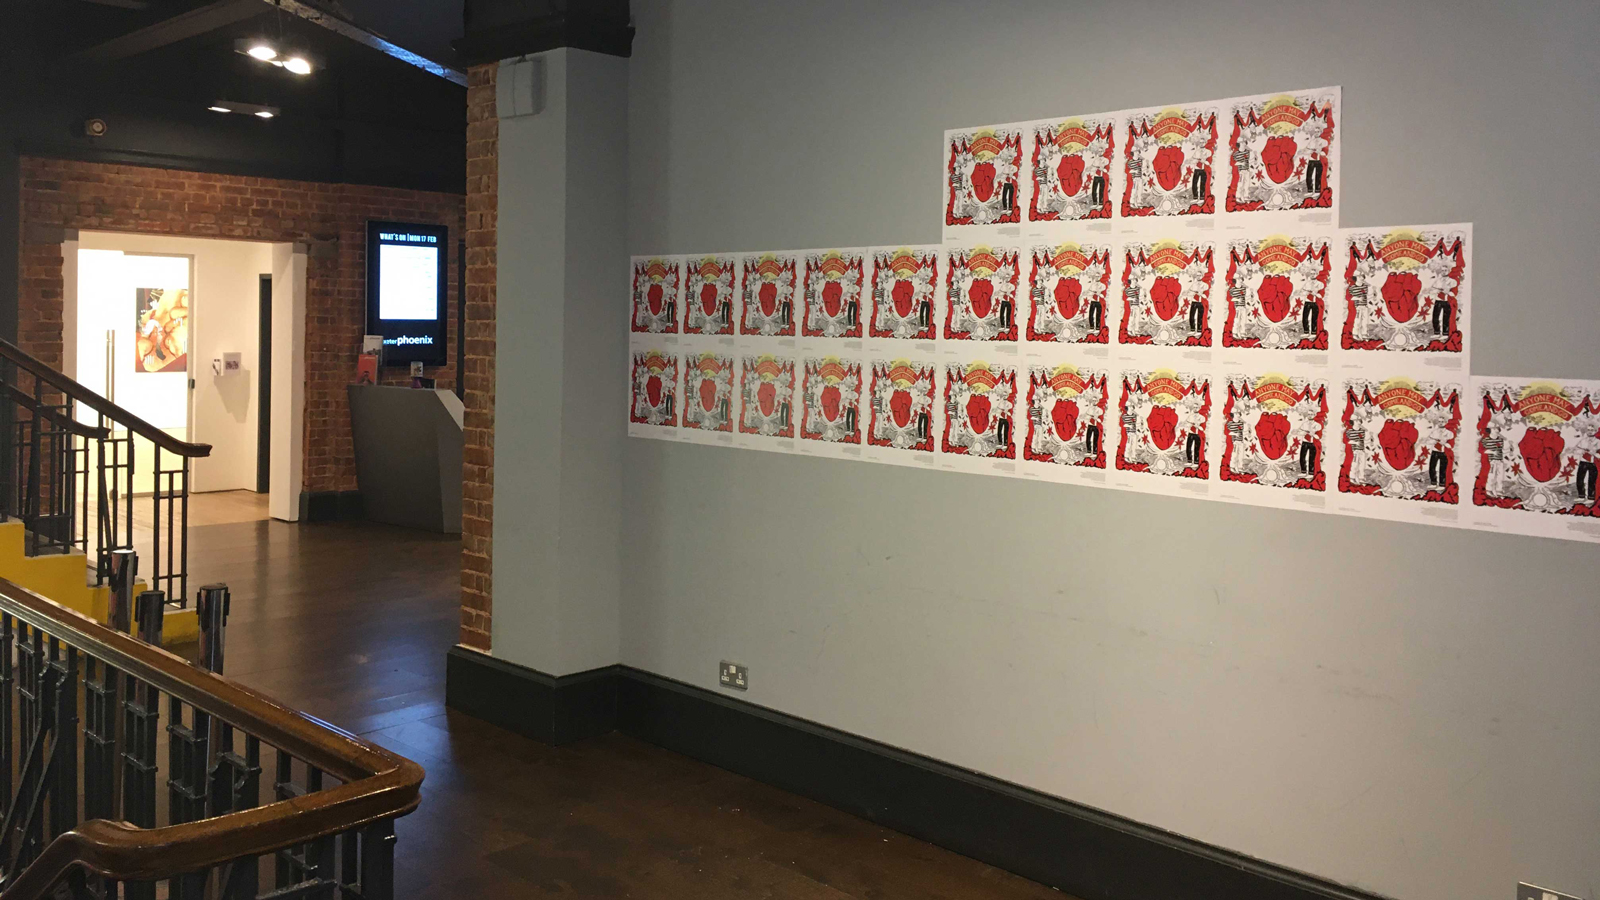 An exhibtion featuring red posters on a grey wall